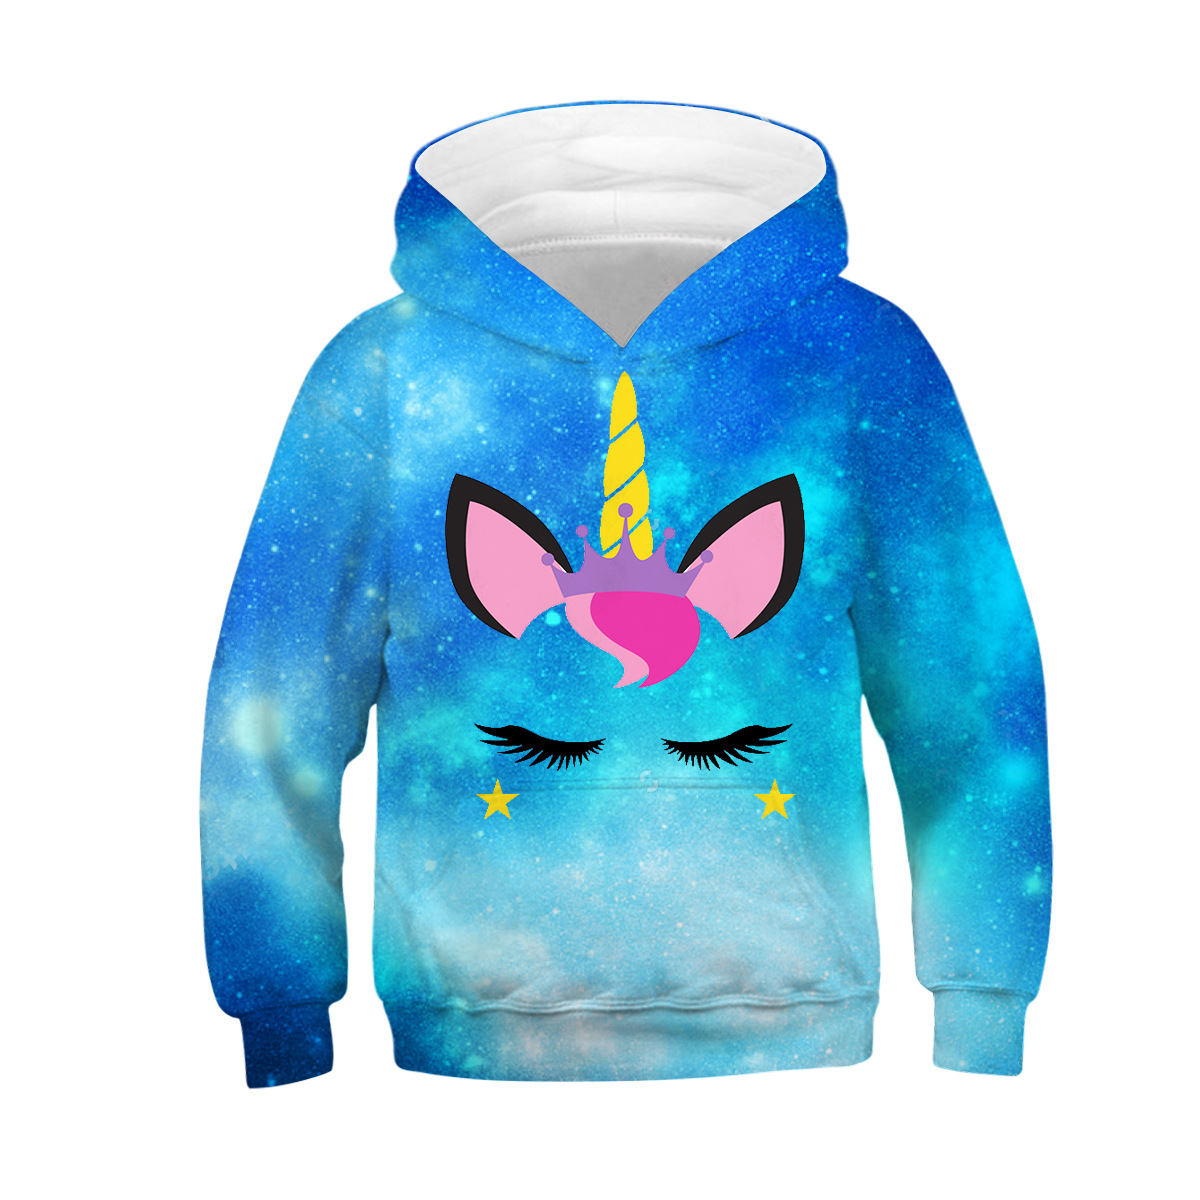 3D Printed Fashion Blue Starry sky Anime Unicorn Print Hoodies Kids Lovely Animal Sweatshirts Children Hooded Pullover Clothes(China)